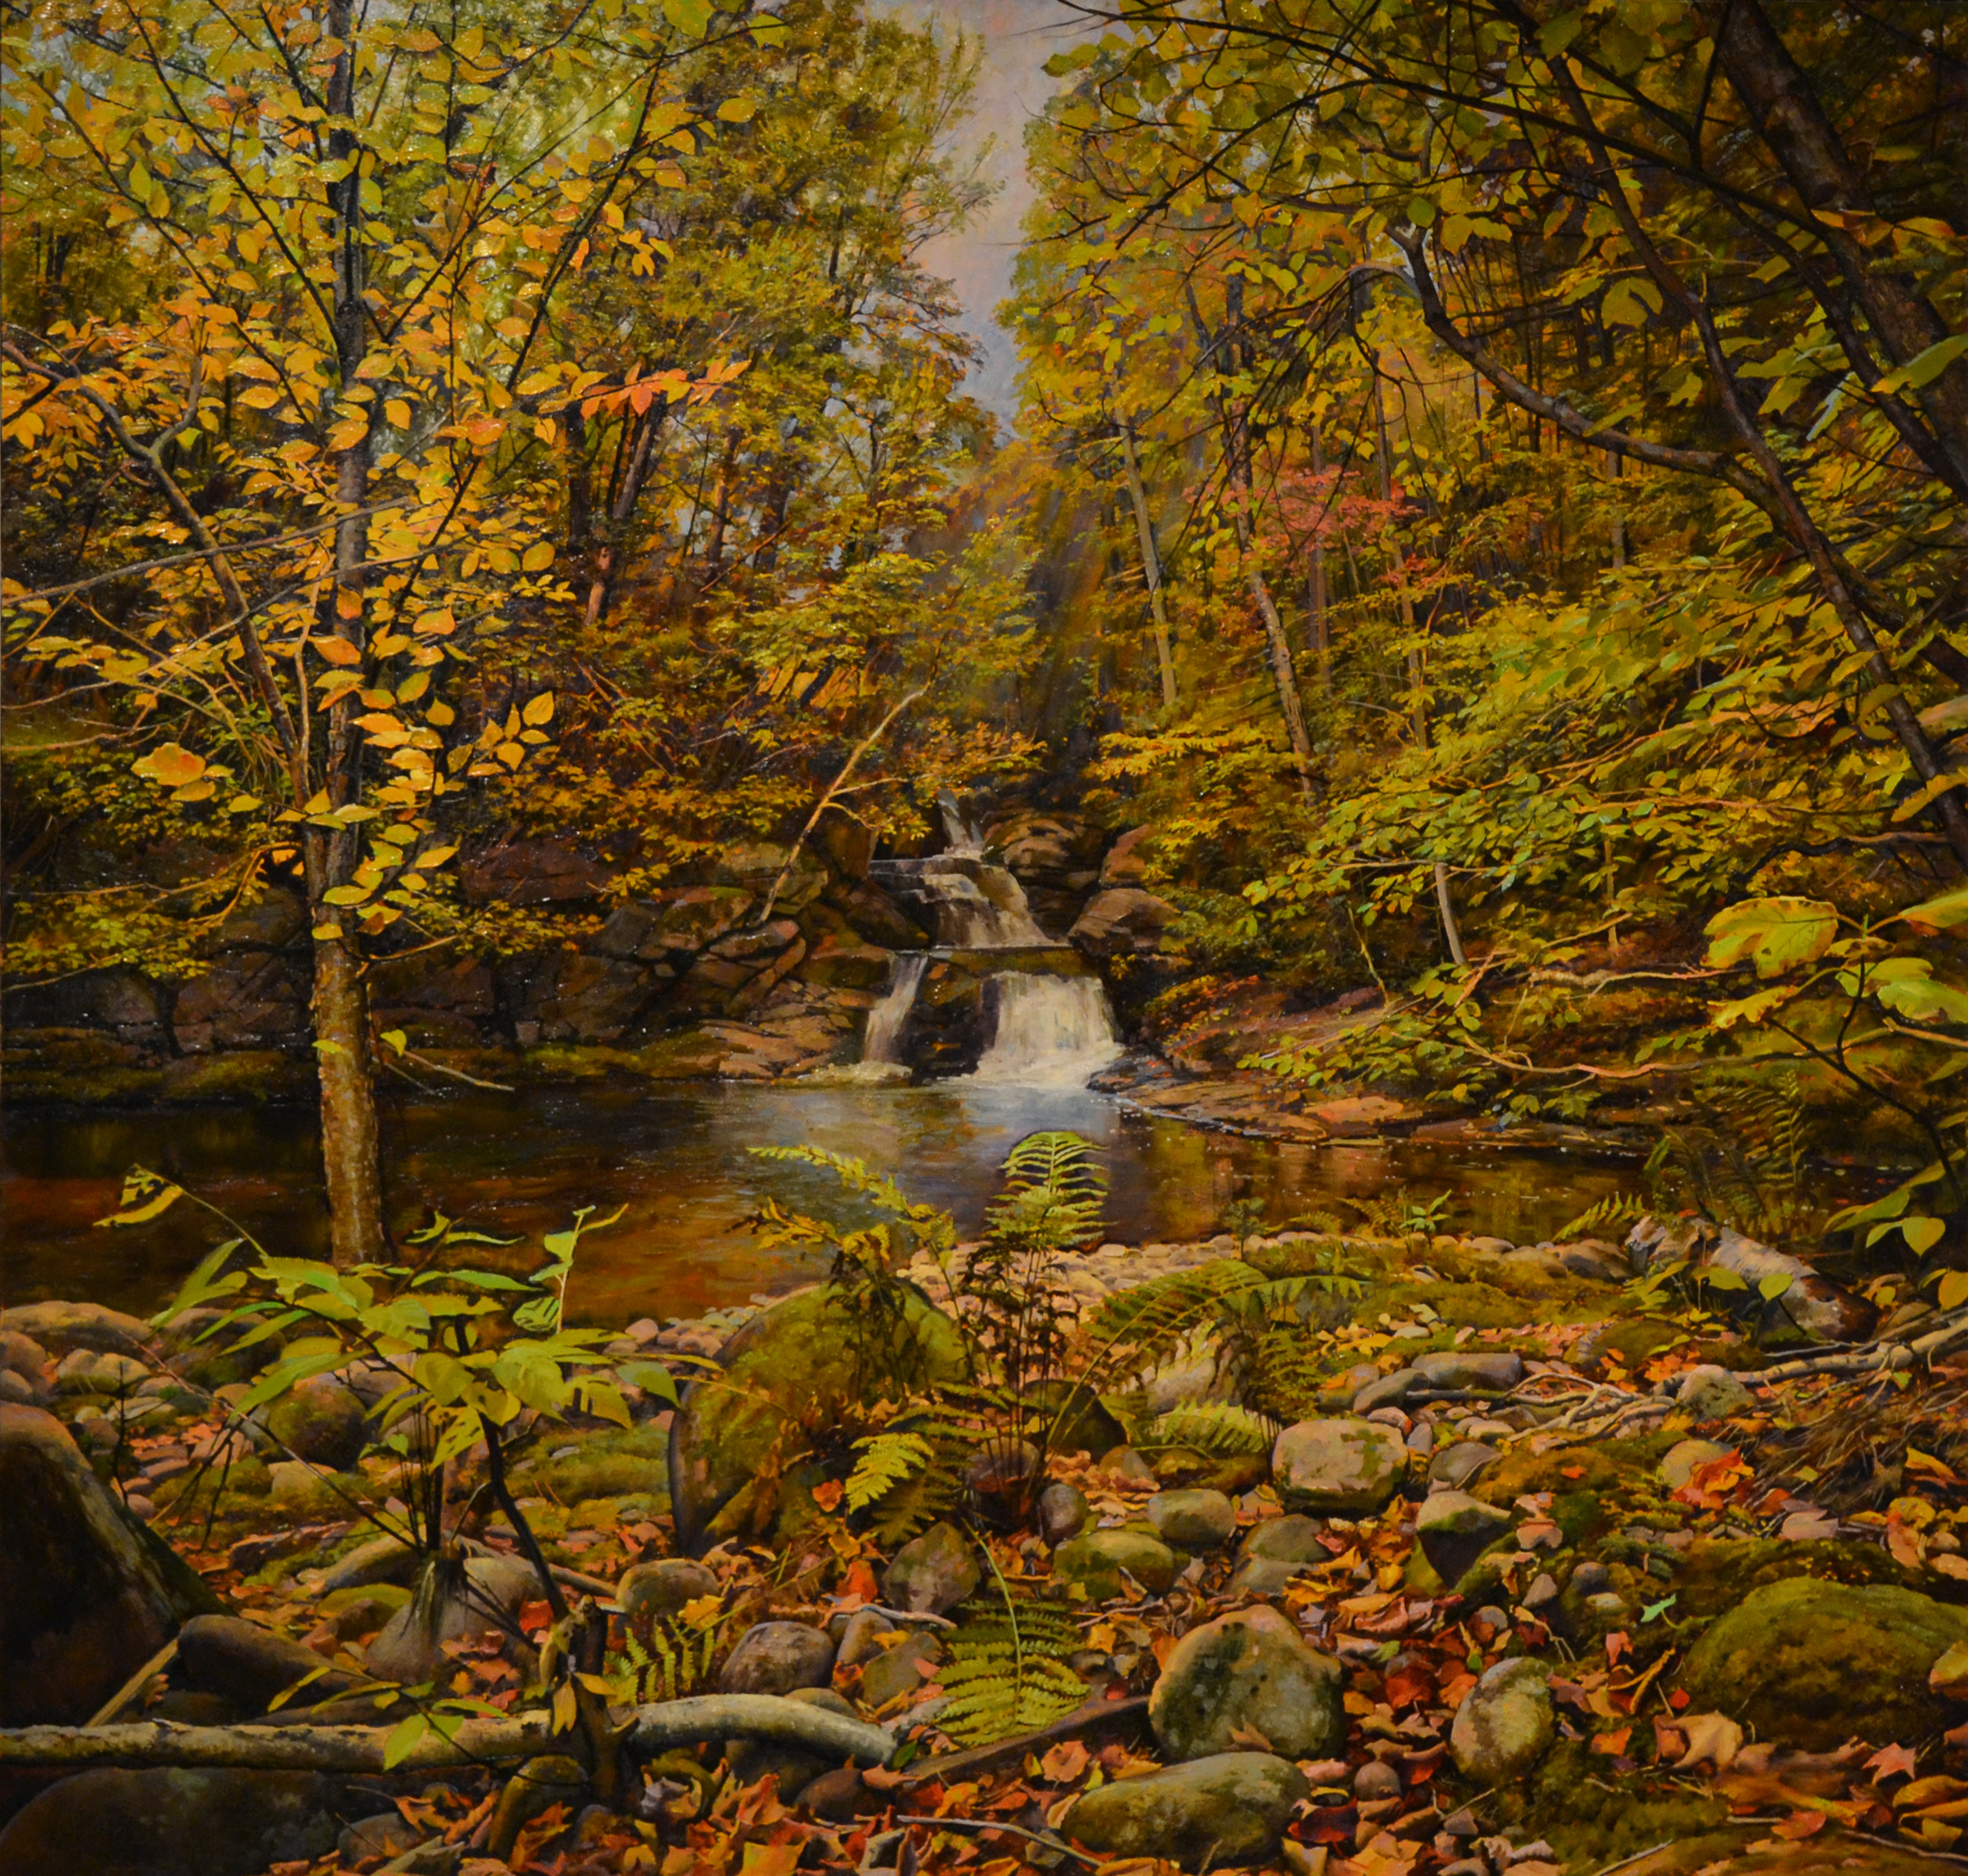 Falls and Pool in the Forest, 2014 oil on linen, 56 x 58 inches